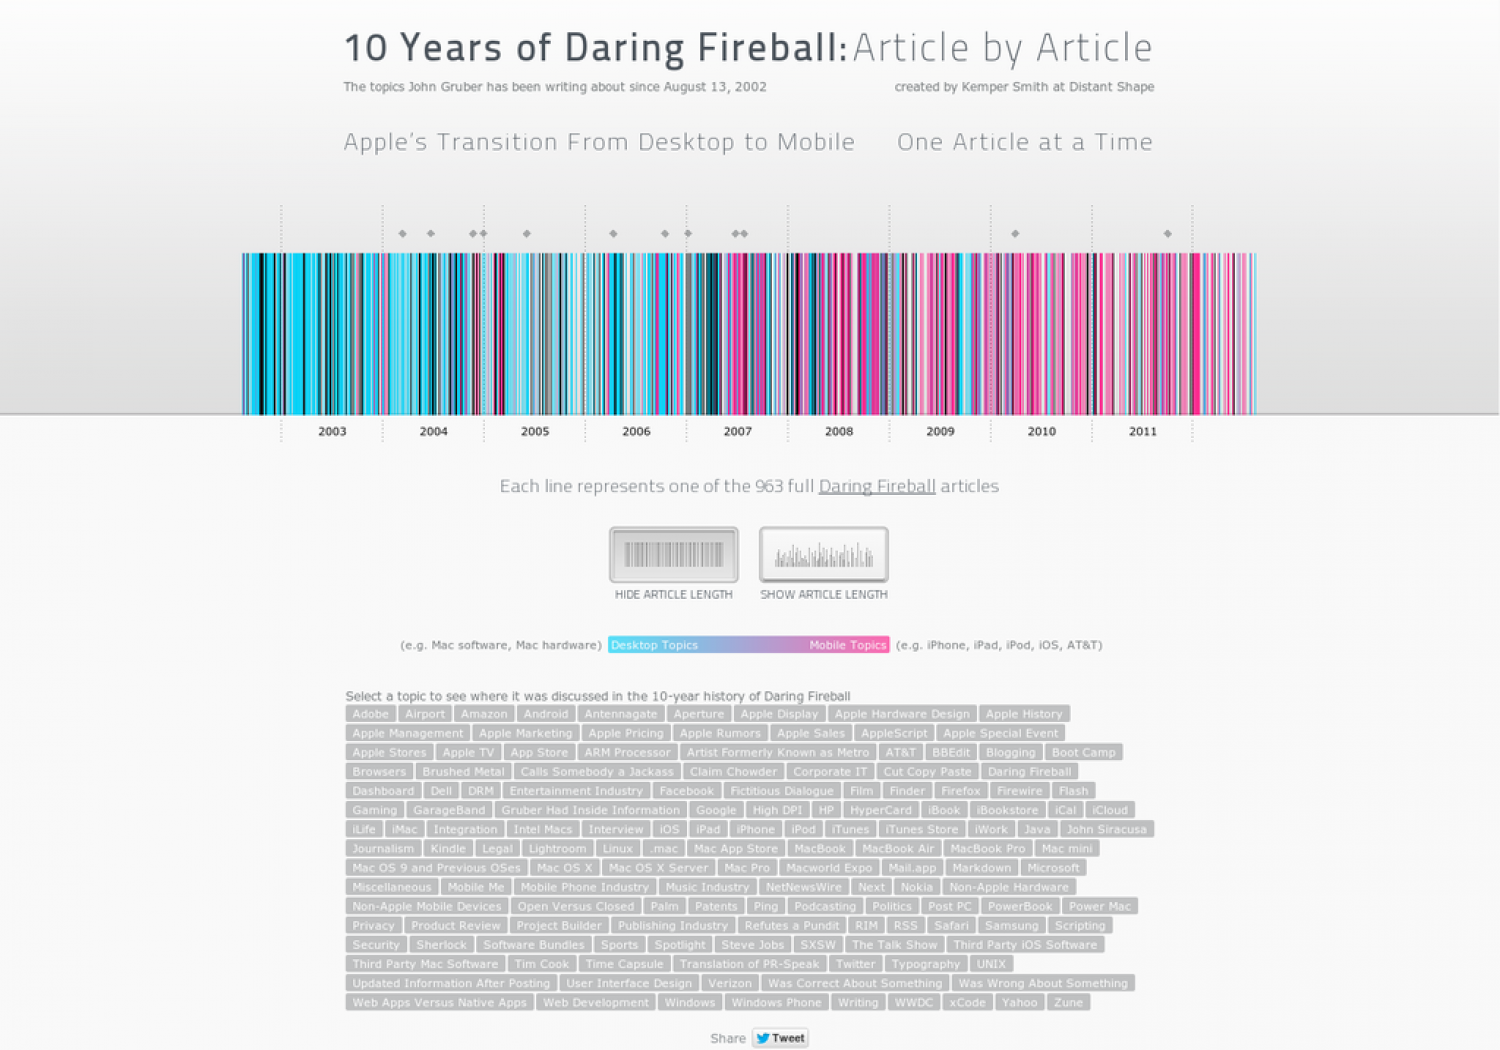 10 Years of Daring Fireball Infographic